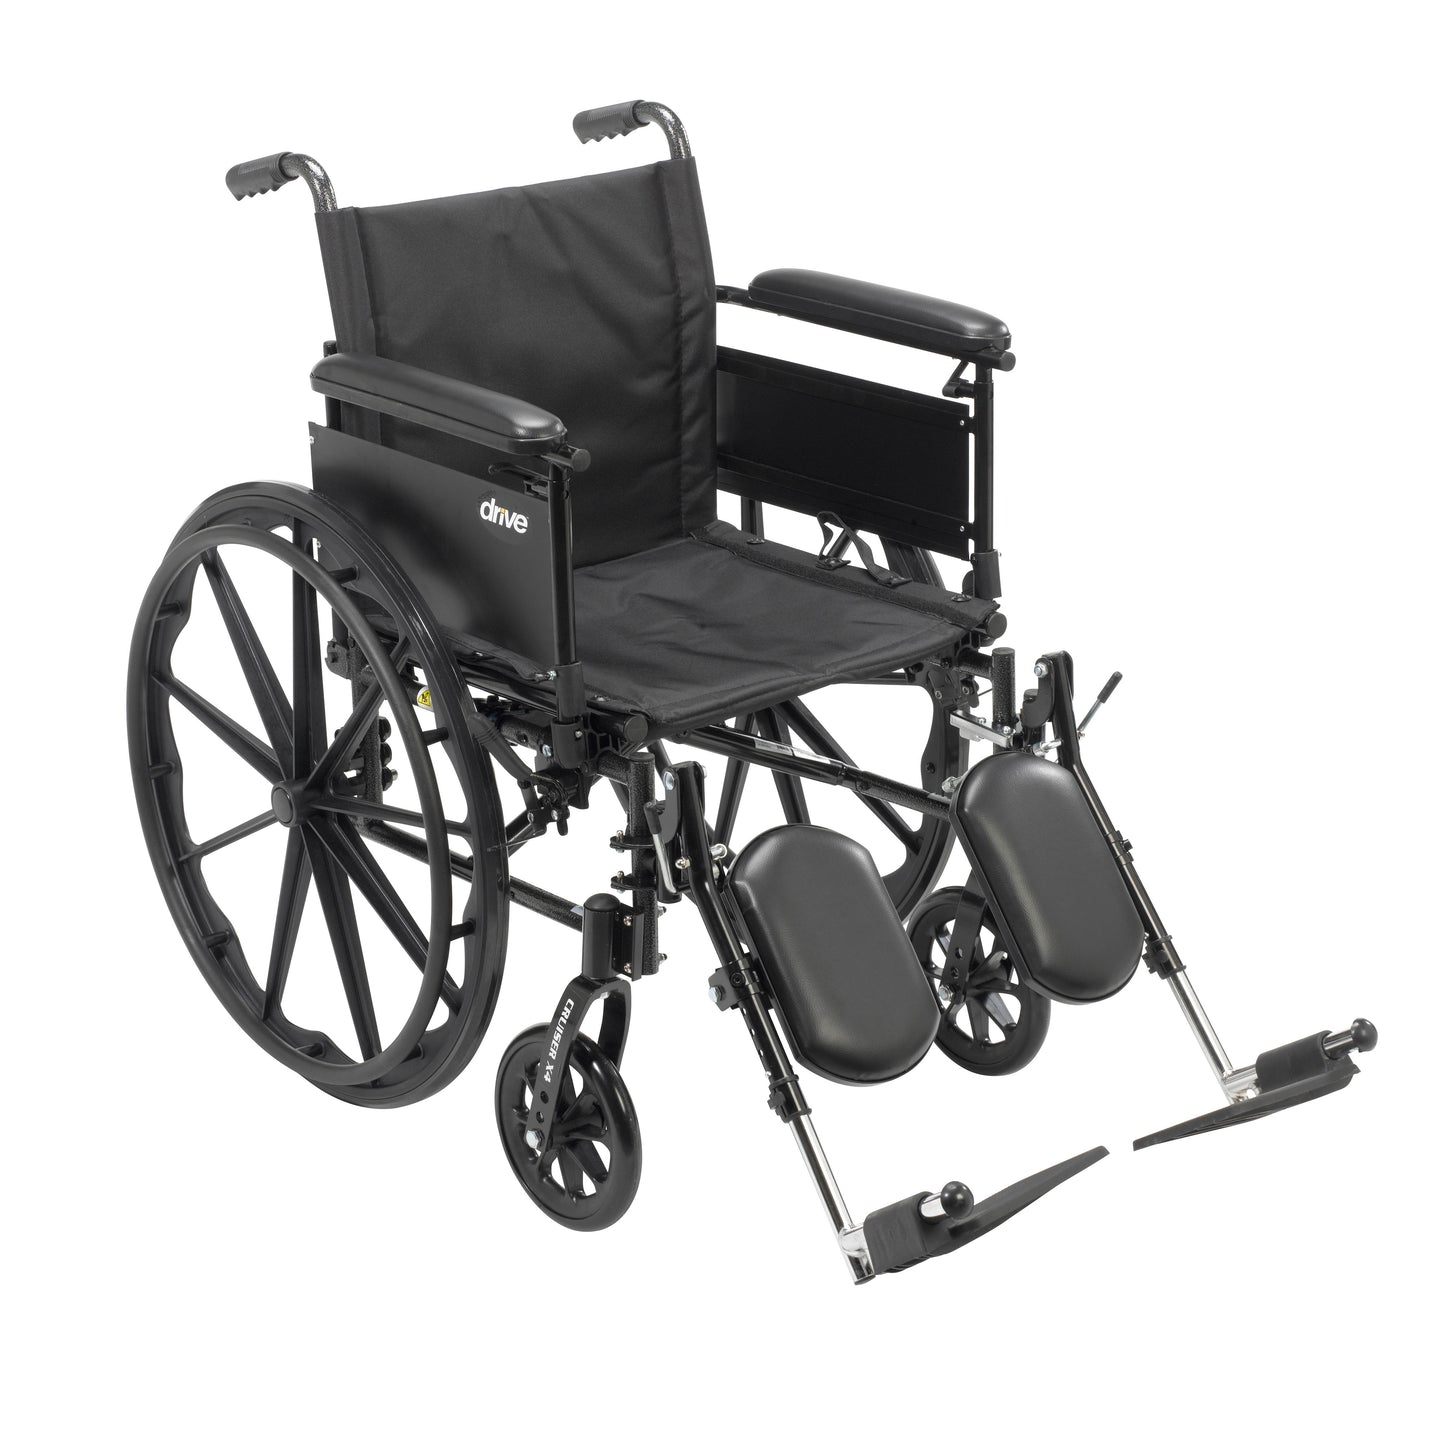 Drive Cruiser X4 Lightweight Dual Axle Wheelchair with Adjustable Detachable Arms- Full Arms- Elevating Leg Rests- 16